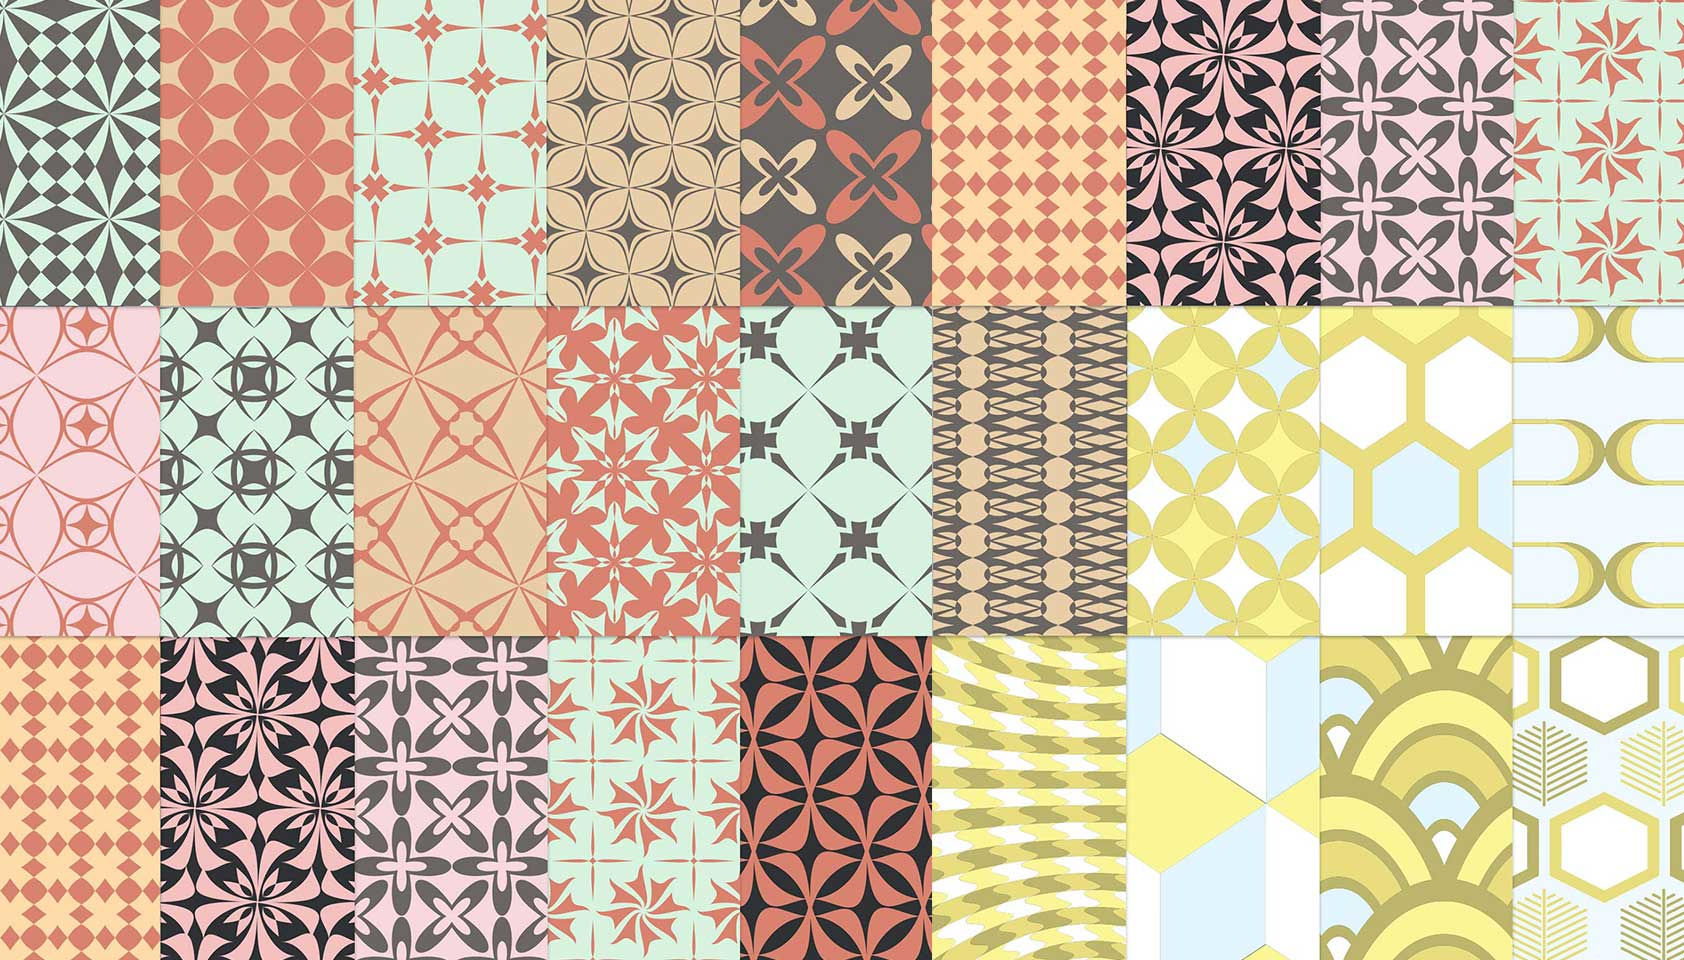 Free download: 25 free retro patterns